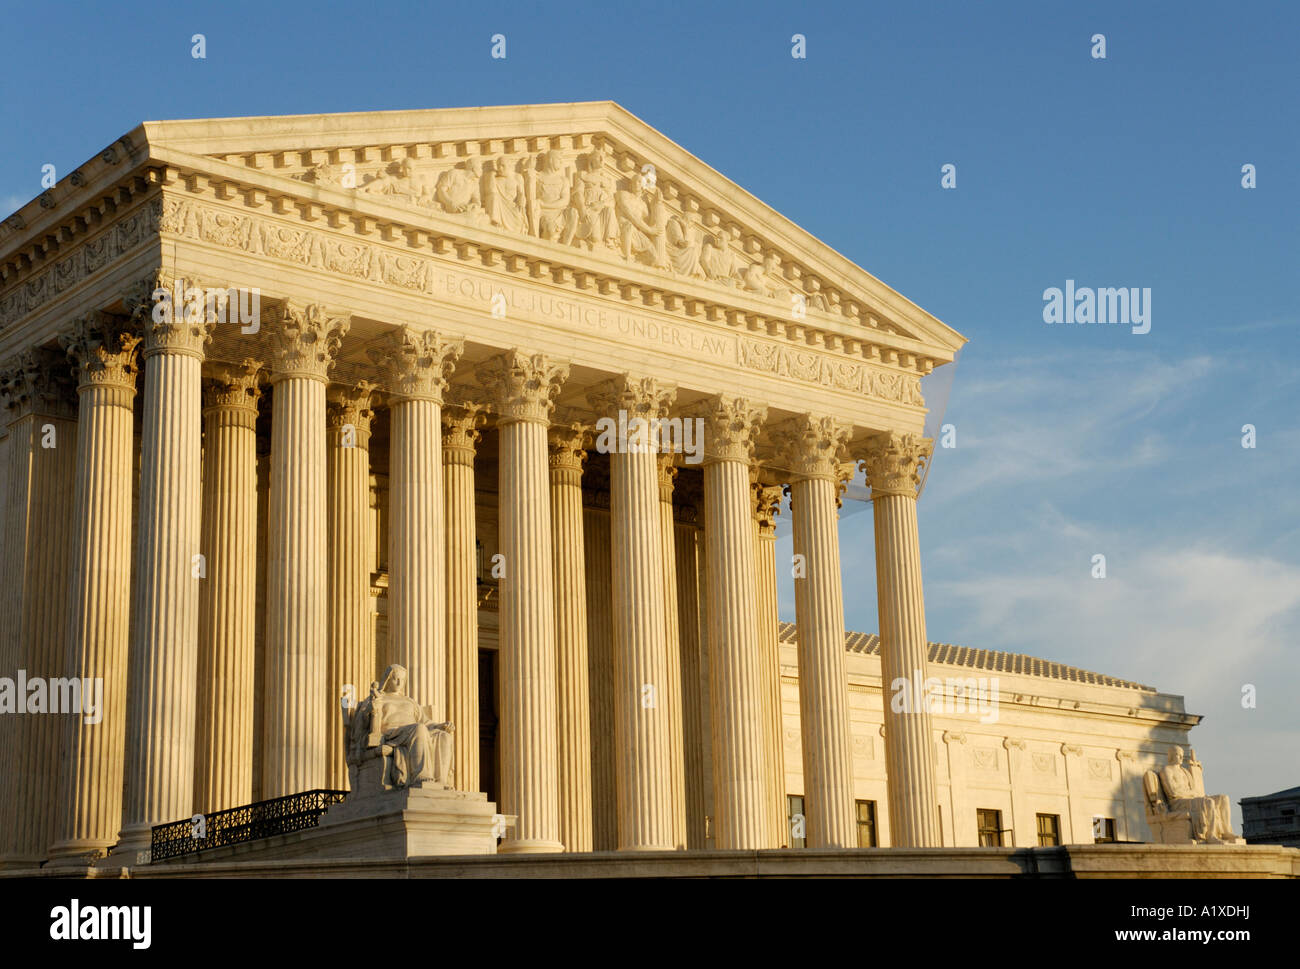 United States U.S. supreme court building - Stock Image